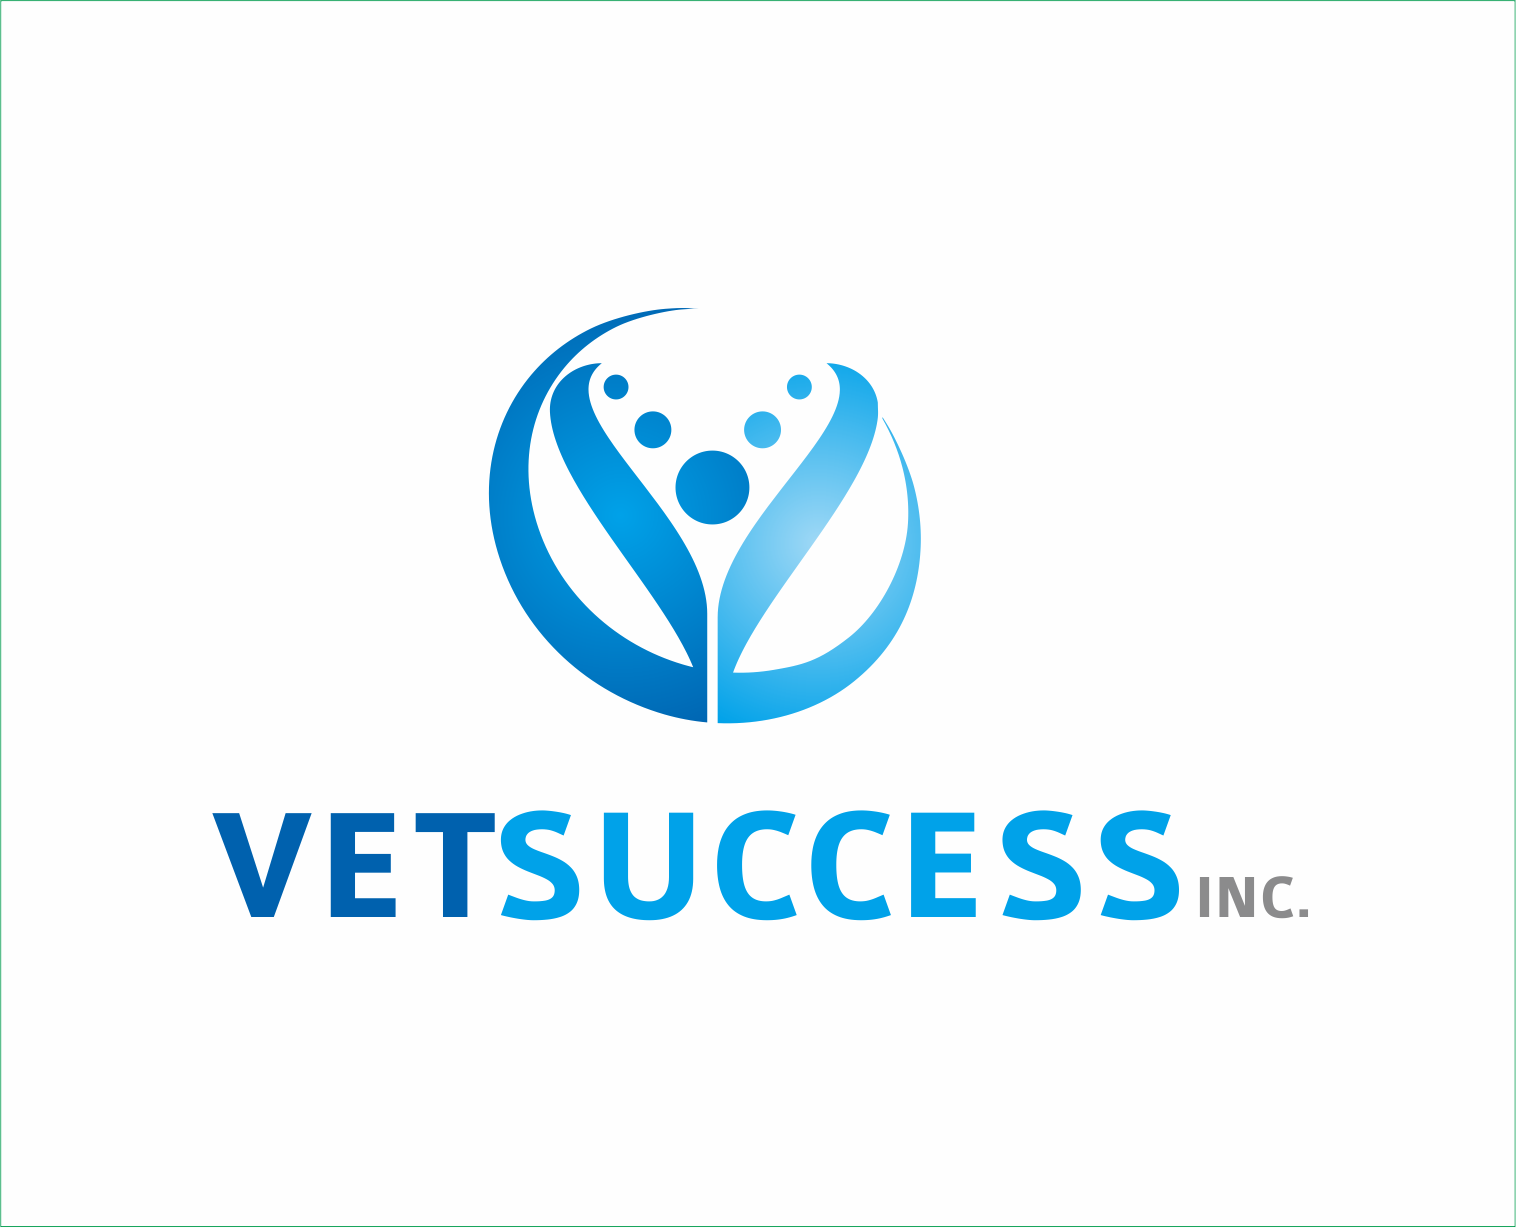 Logo Design by Armada Jamaluddin - Entry No. 132 in the Logo Design Contest Imaginative Logo Design for Vet Success Inc..